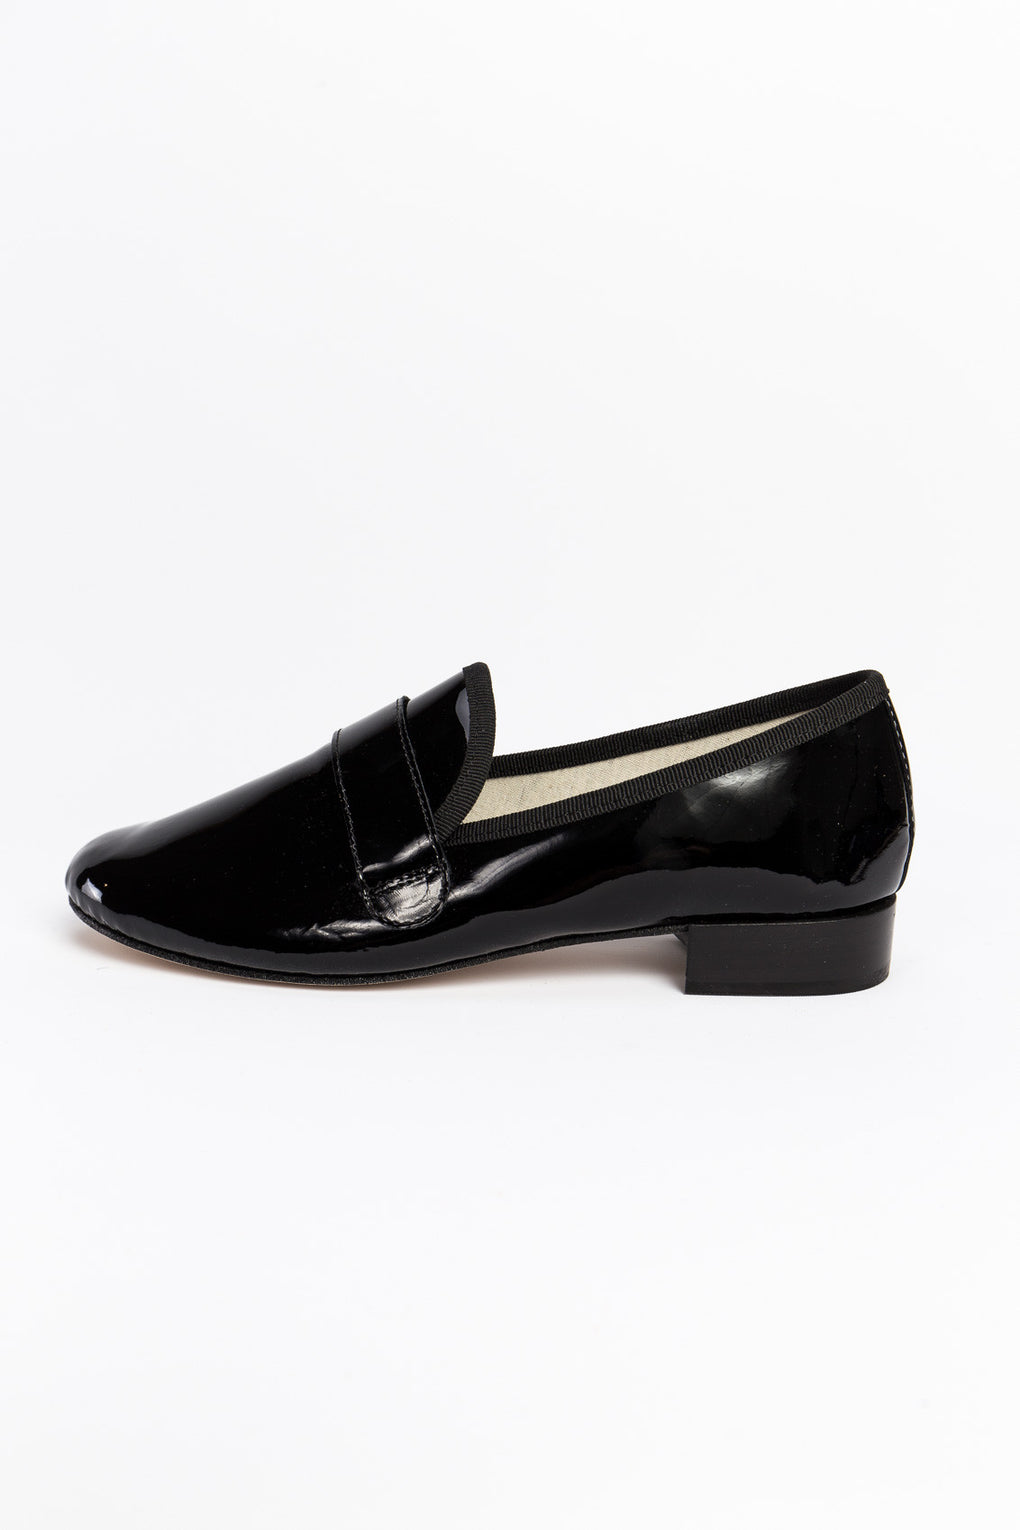 Repetto Michael Loafers-Black patent loafer-Repetto shoes-Idun-Saint Paul